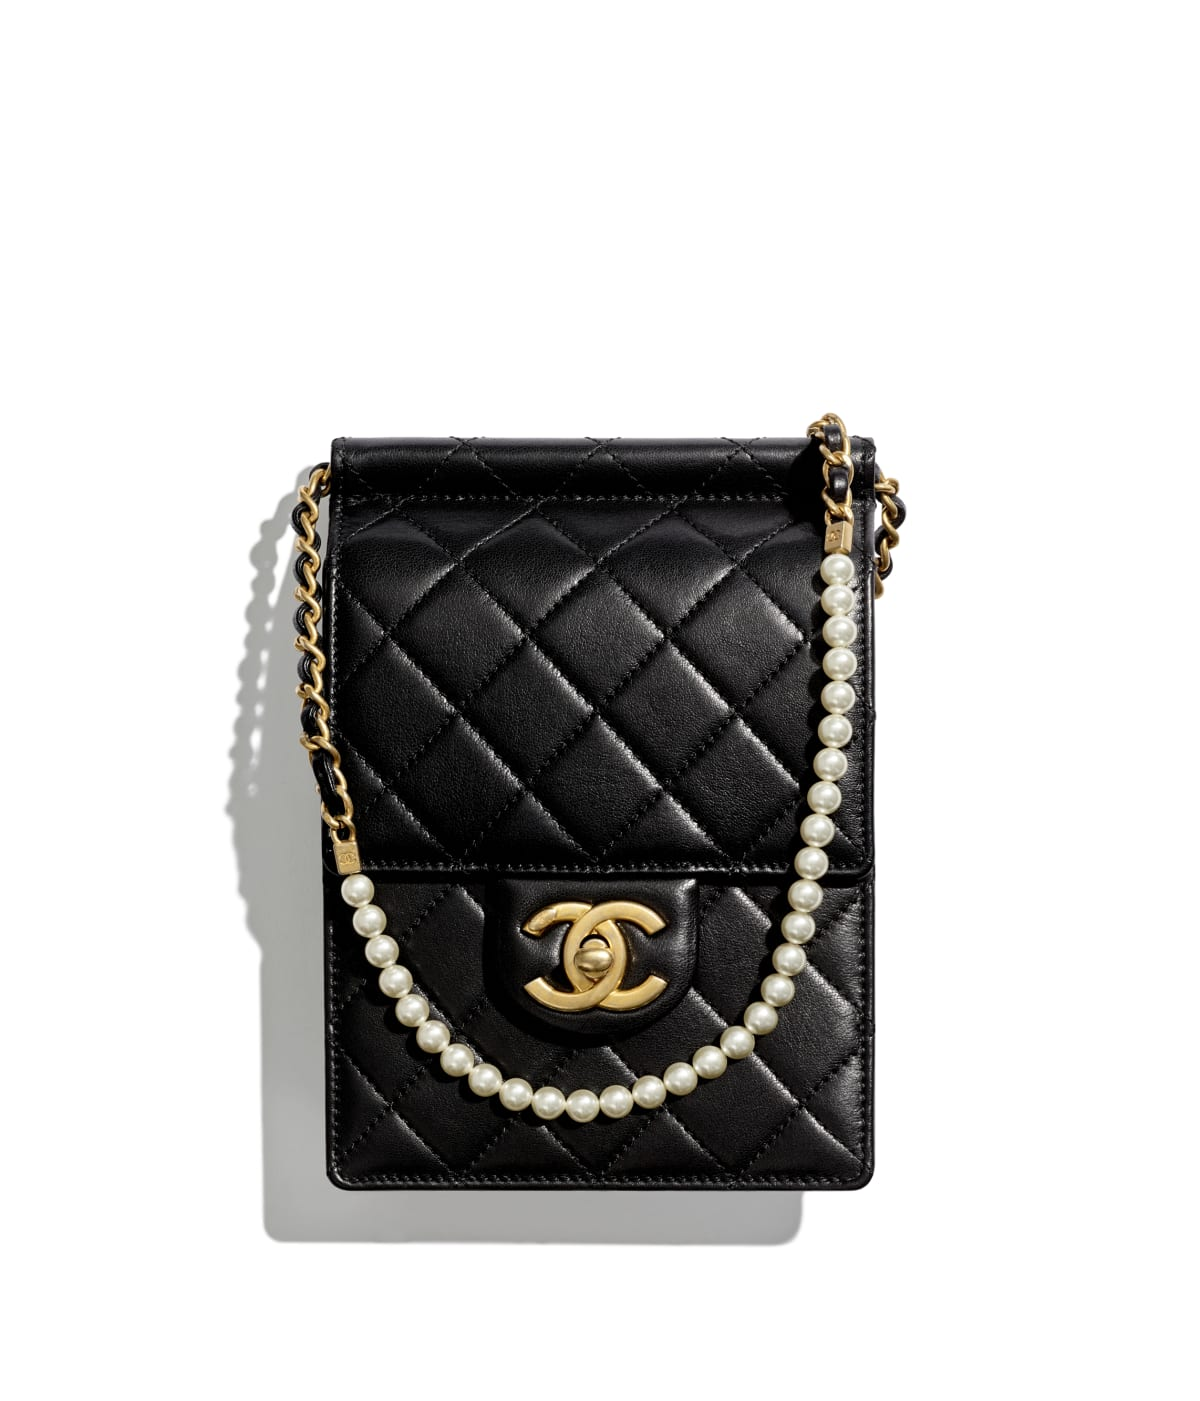 Clutches with Chain - Small Leather Goods - CHANEL 8e548422f8339